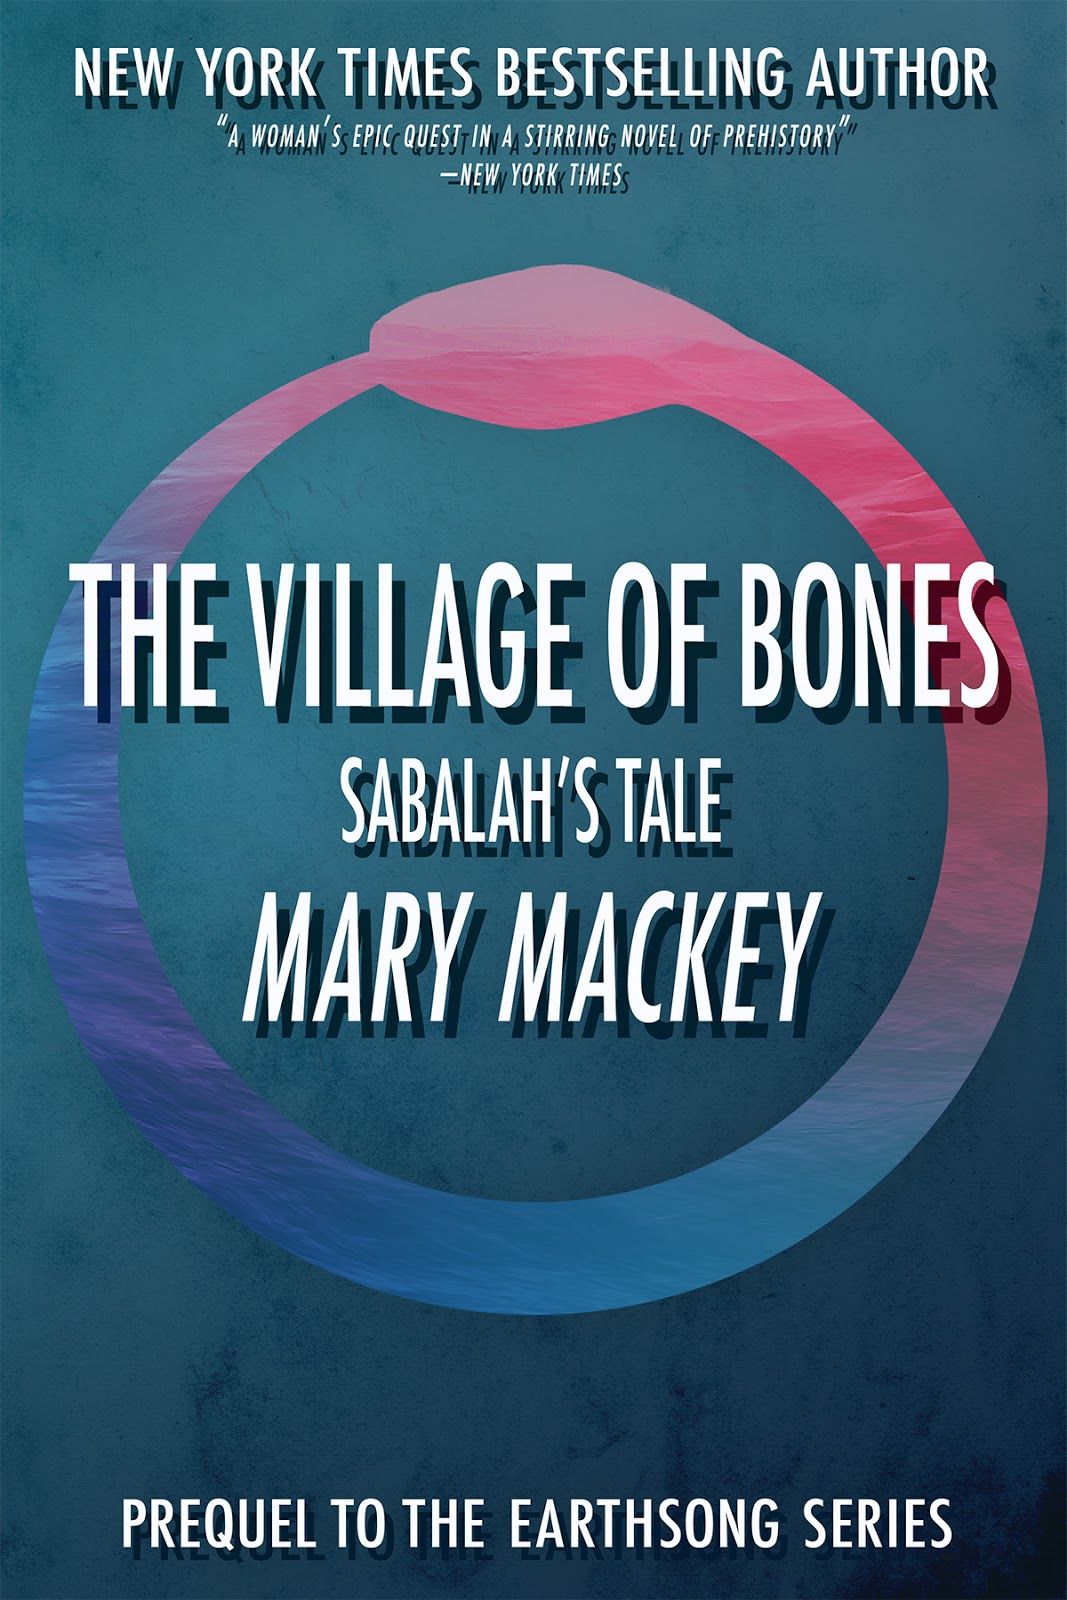 Interview with novelist Mary Mackey